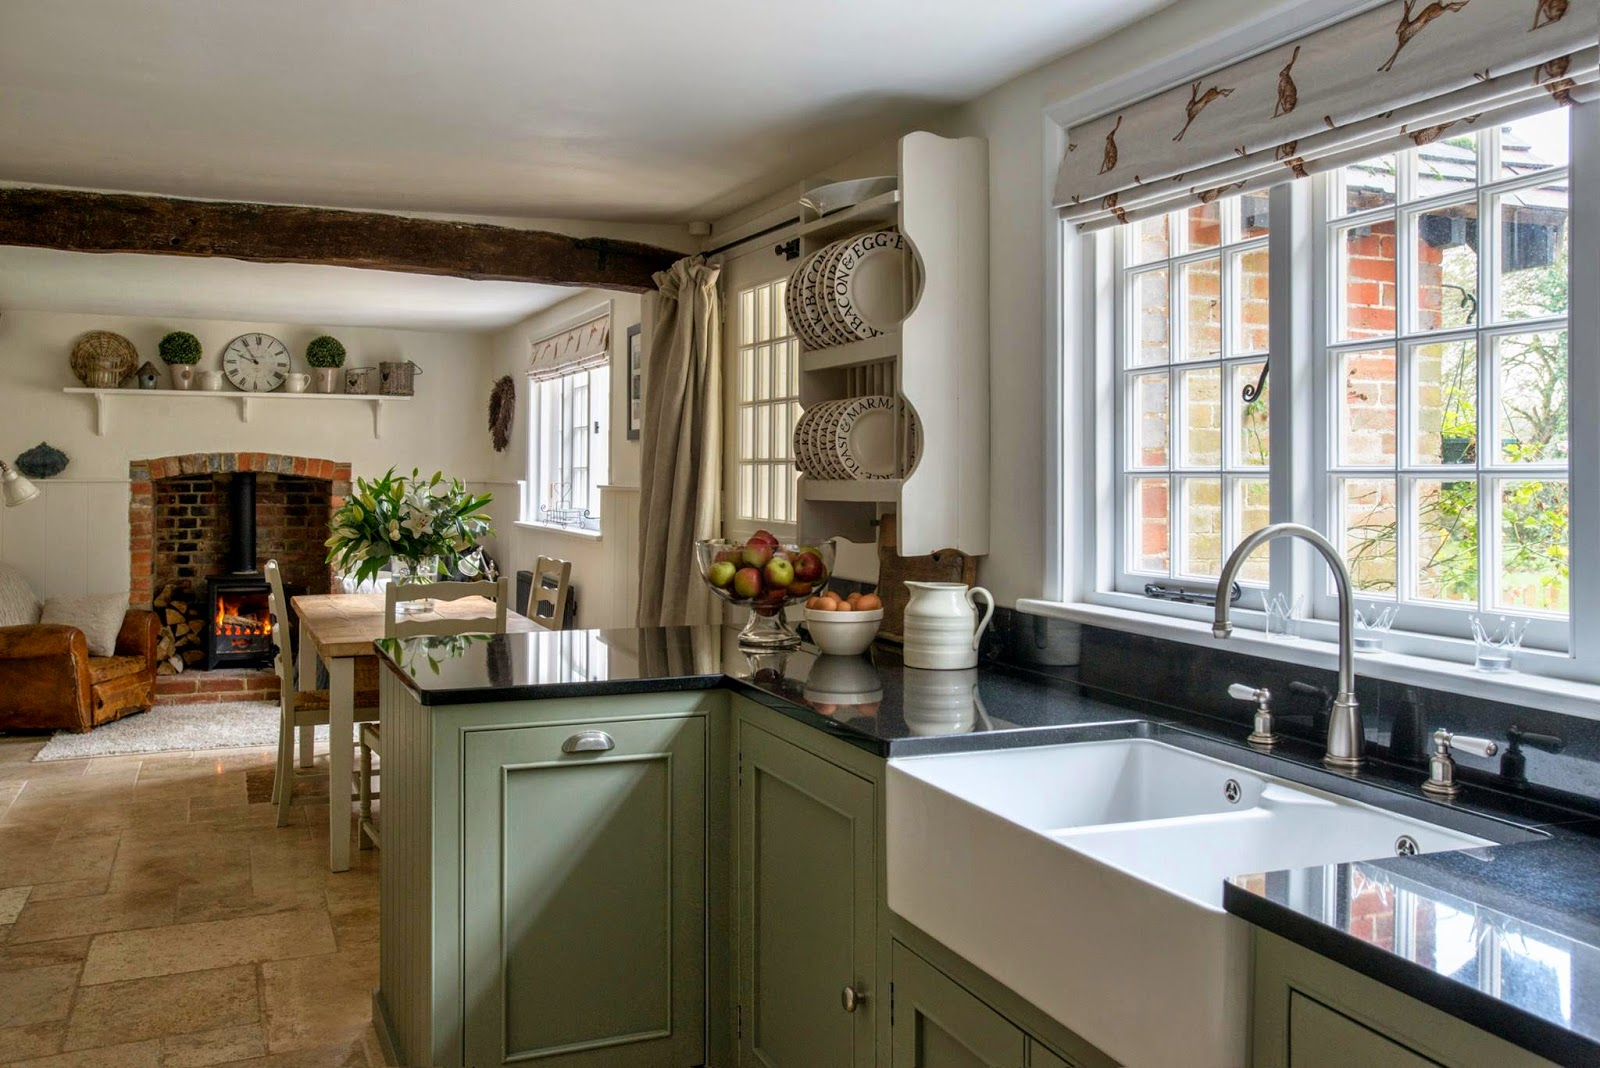 Modern country style modern country kitchen and colour scheme - Country style kitchen cabinets ...